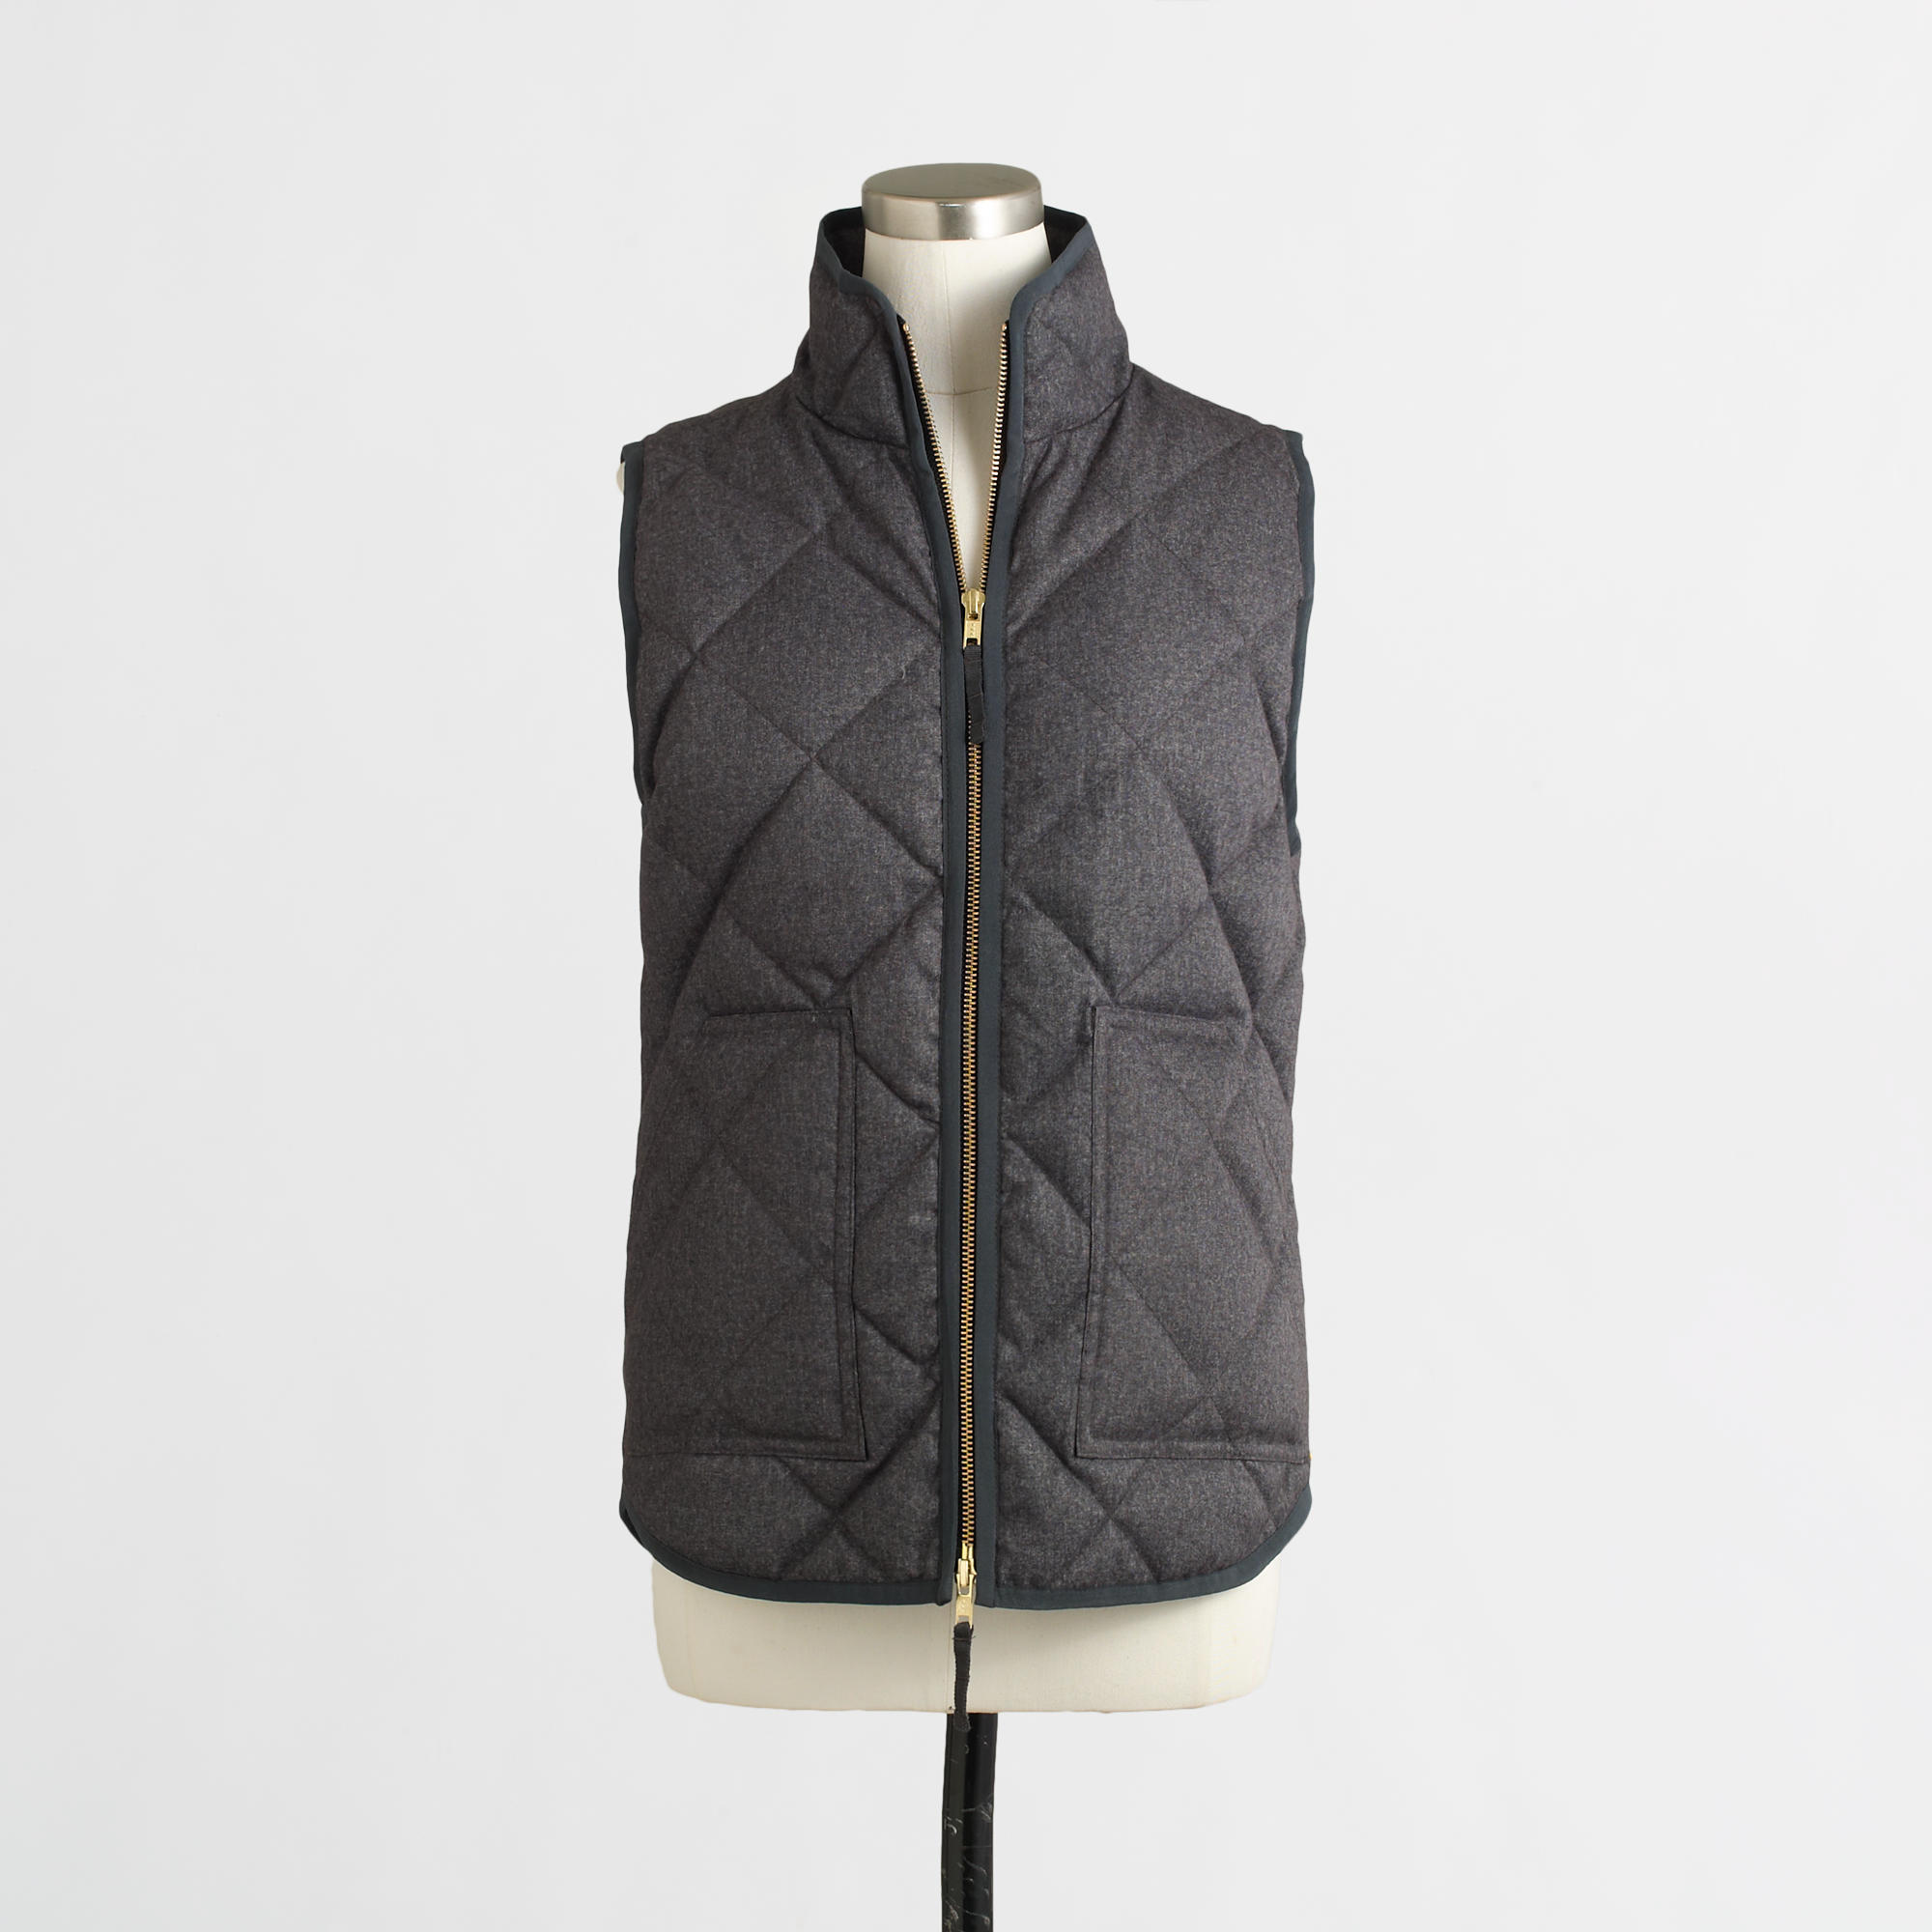 J.Crew Factory Puffer Vests - Kelly in the City